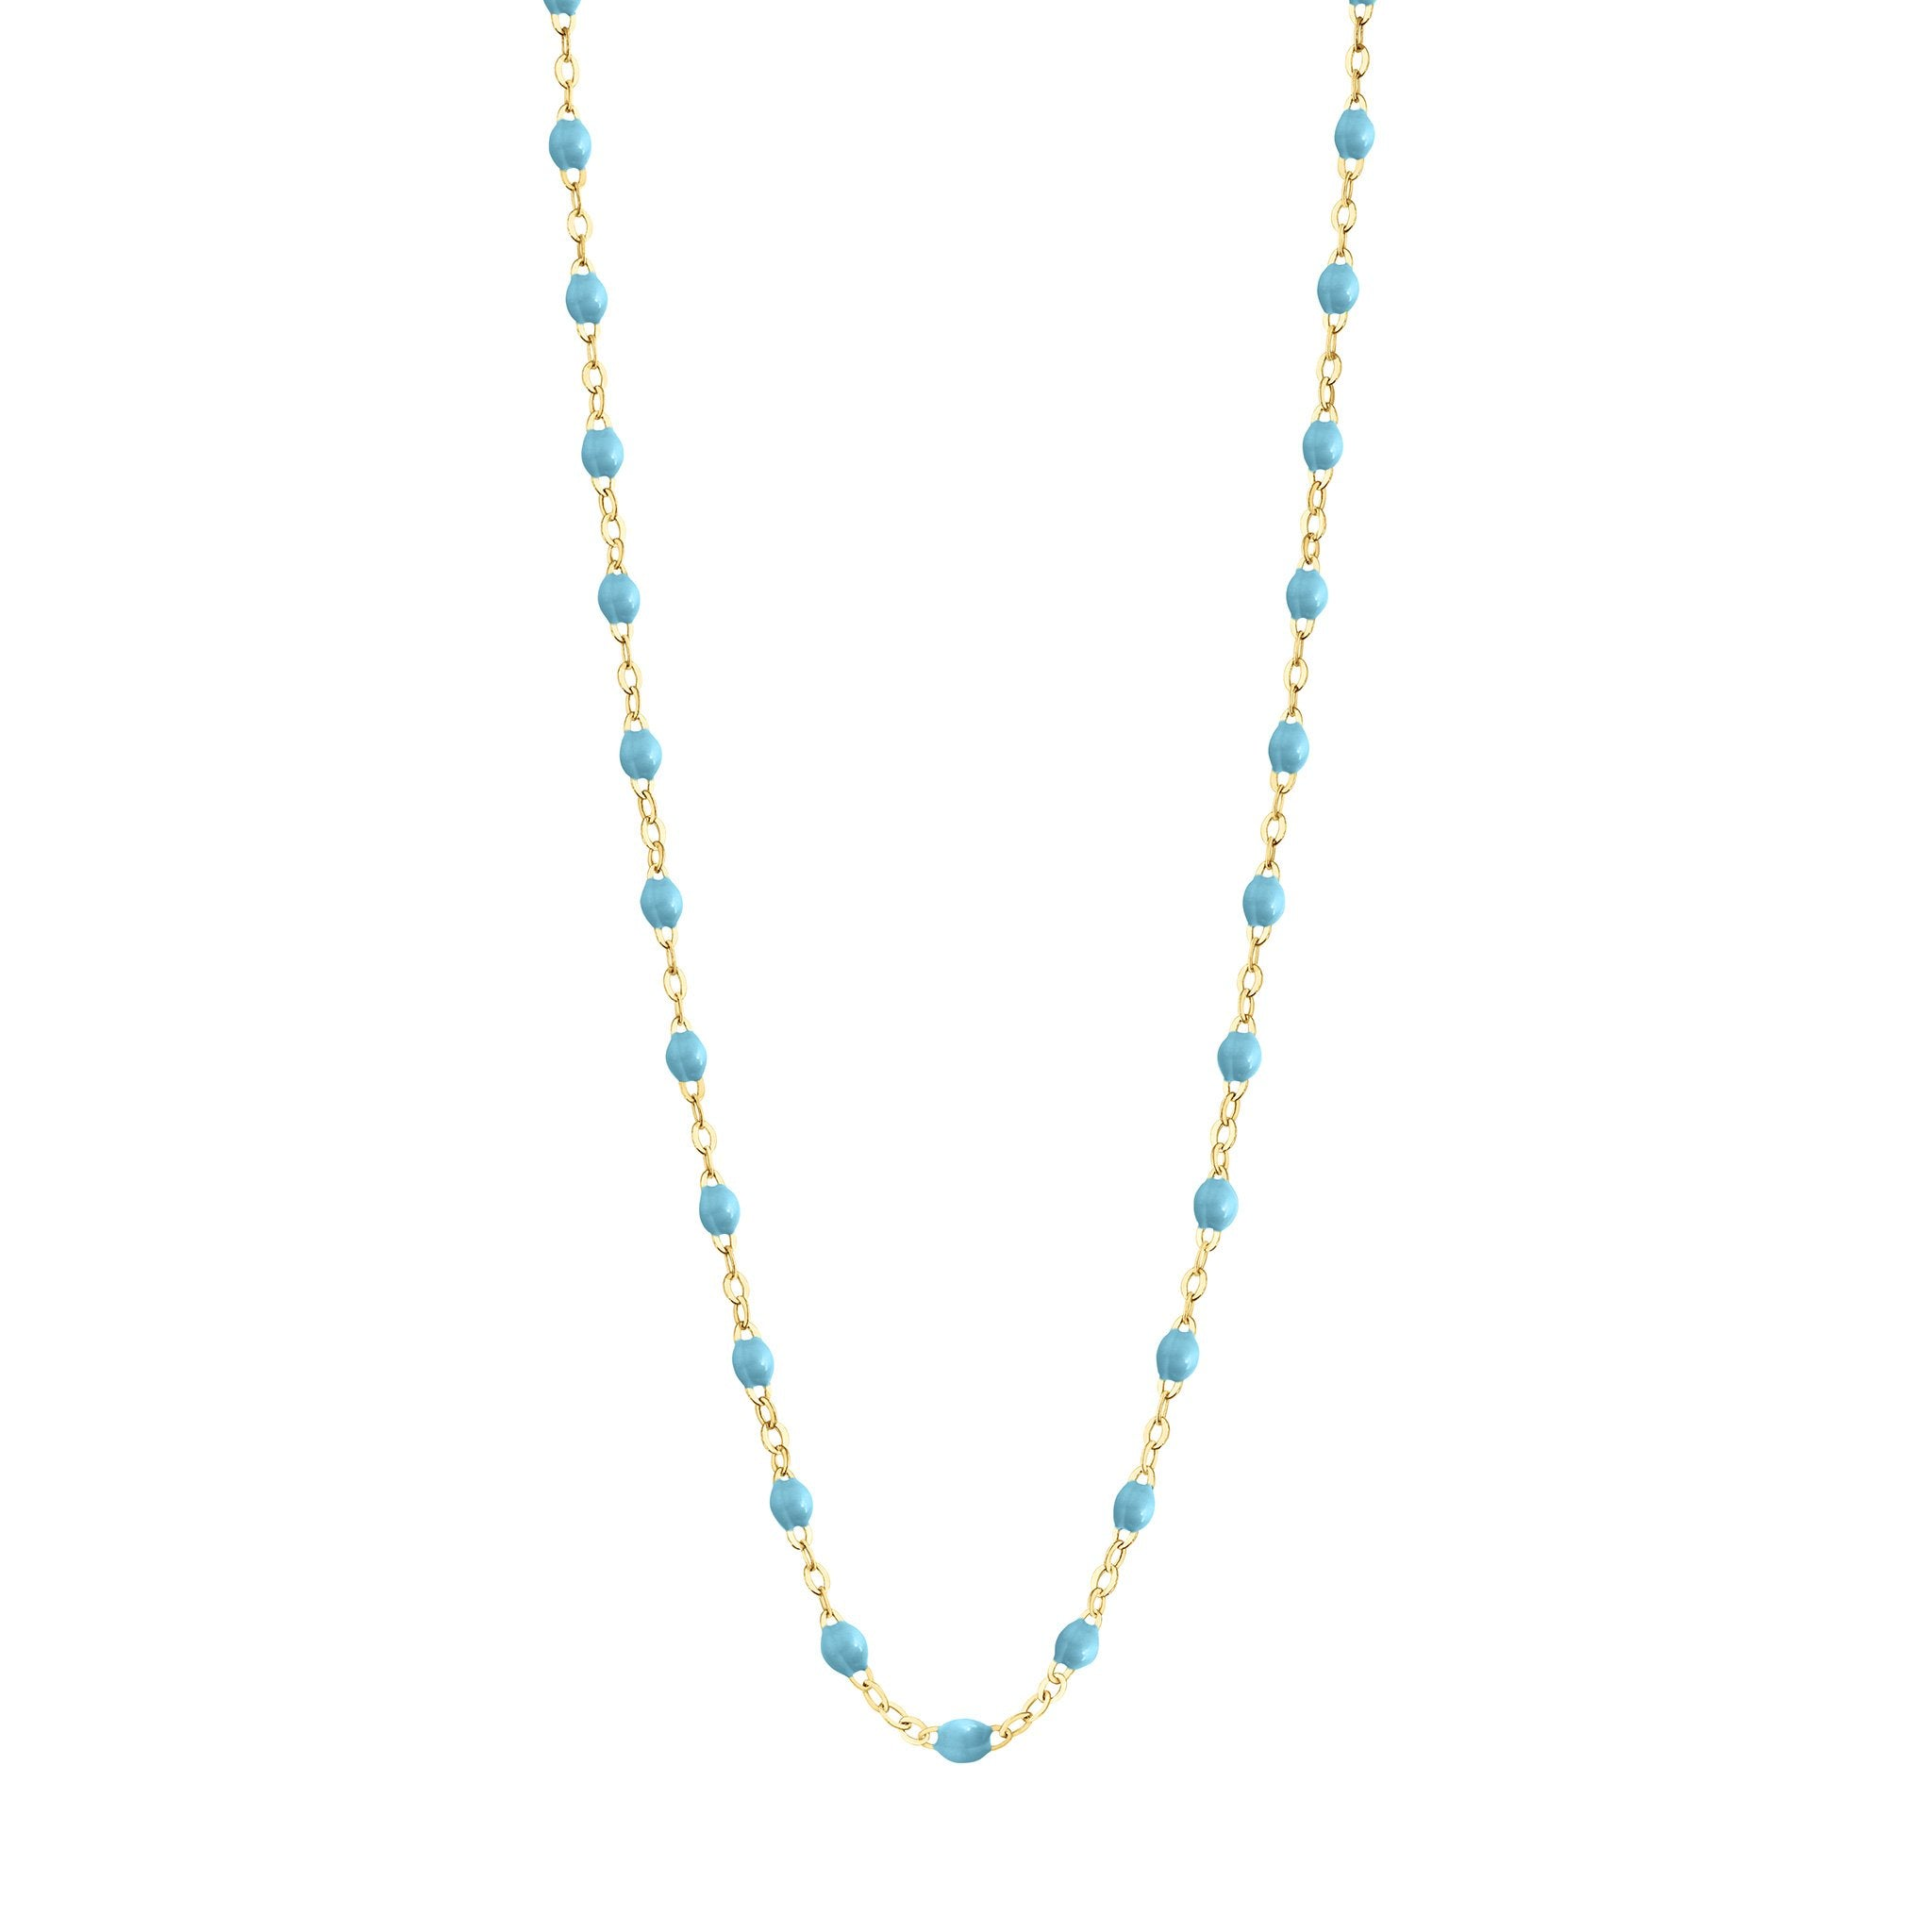 Gigi Clozeau - Classic Gigi Turquoise necklace, Yellow Gold, 17.7""